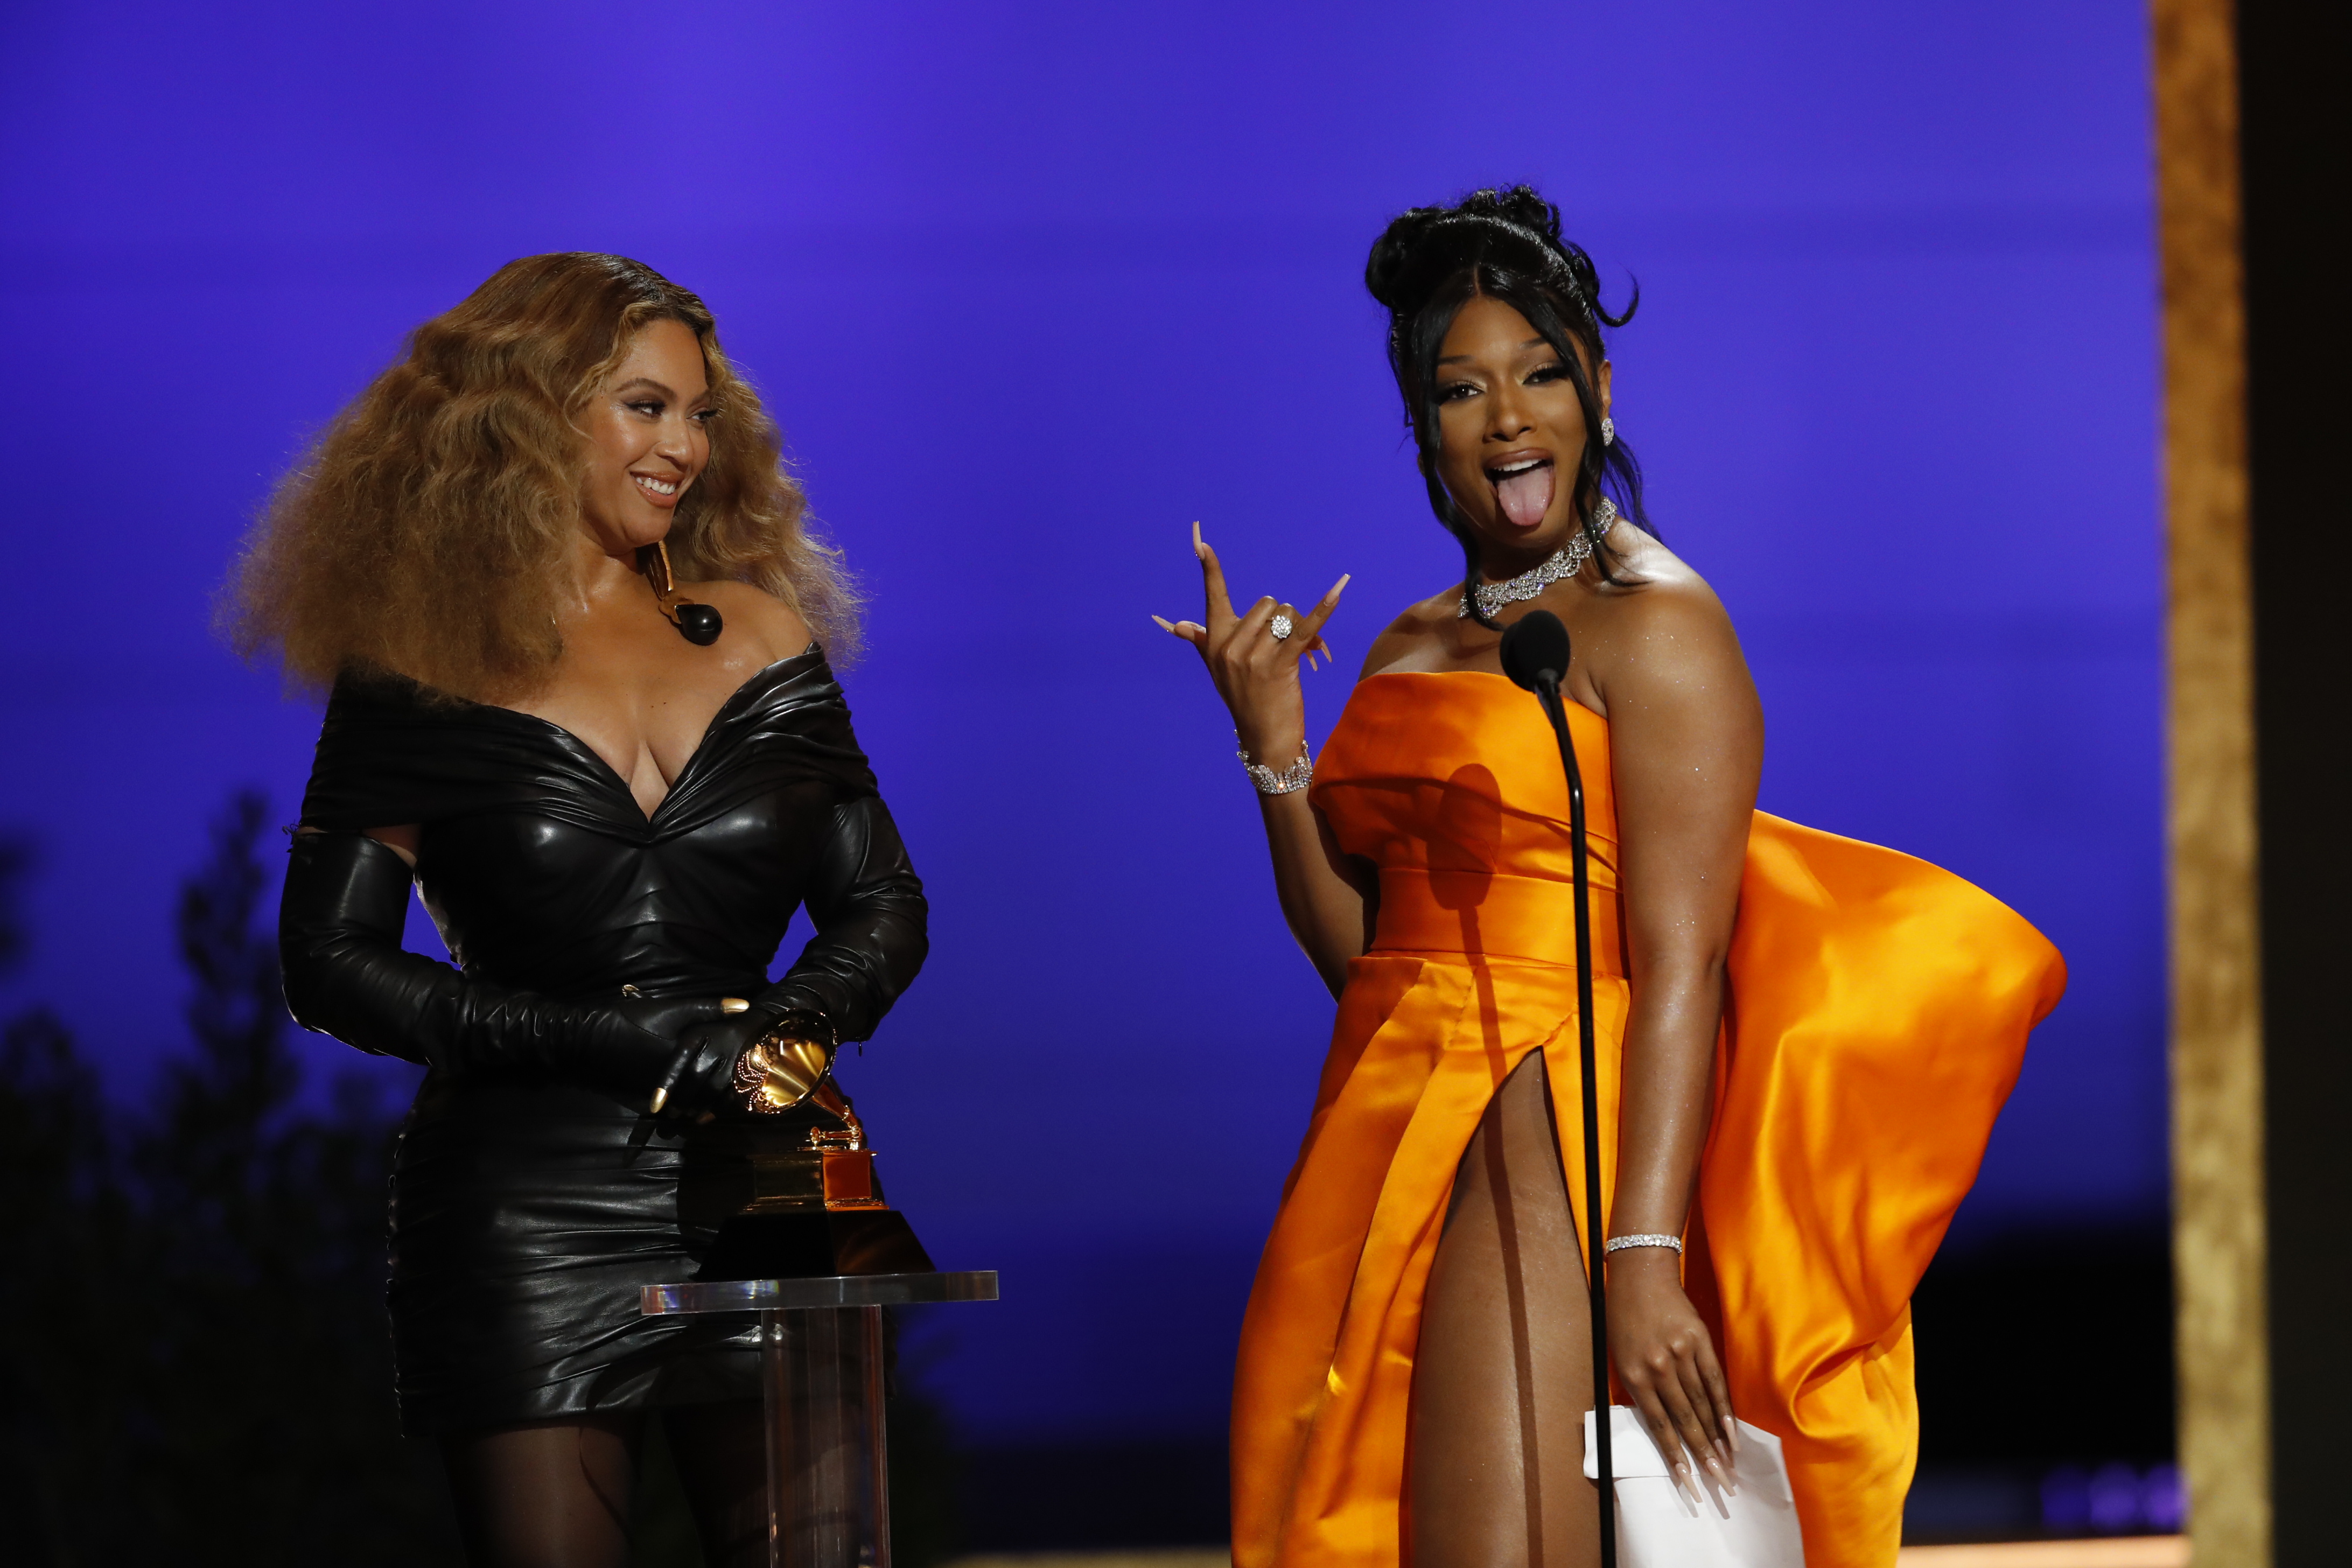 Beyoncé and Megan Thee Stallion win the award for Best Rap Song at the 63rd Annual Grammy Awards, broadcast live from the STAPLES Center in Los Angeles, Sunday, March 14, 2021.